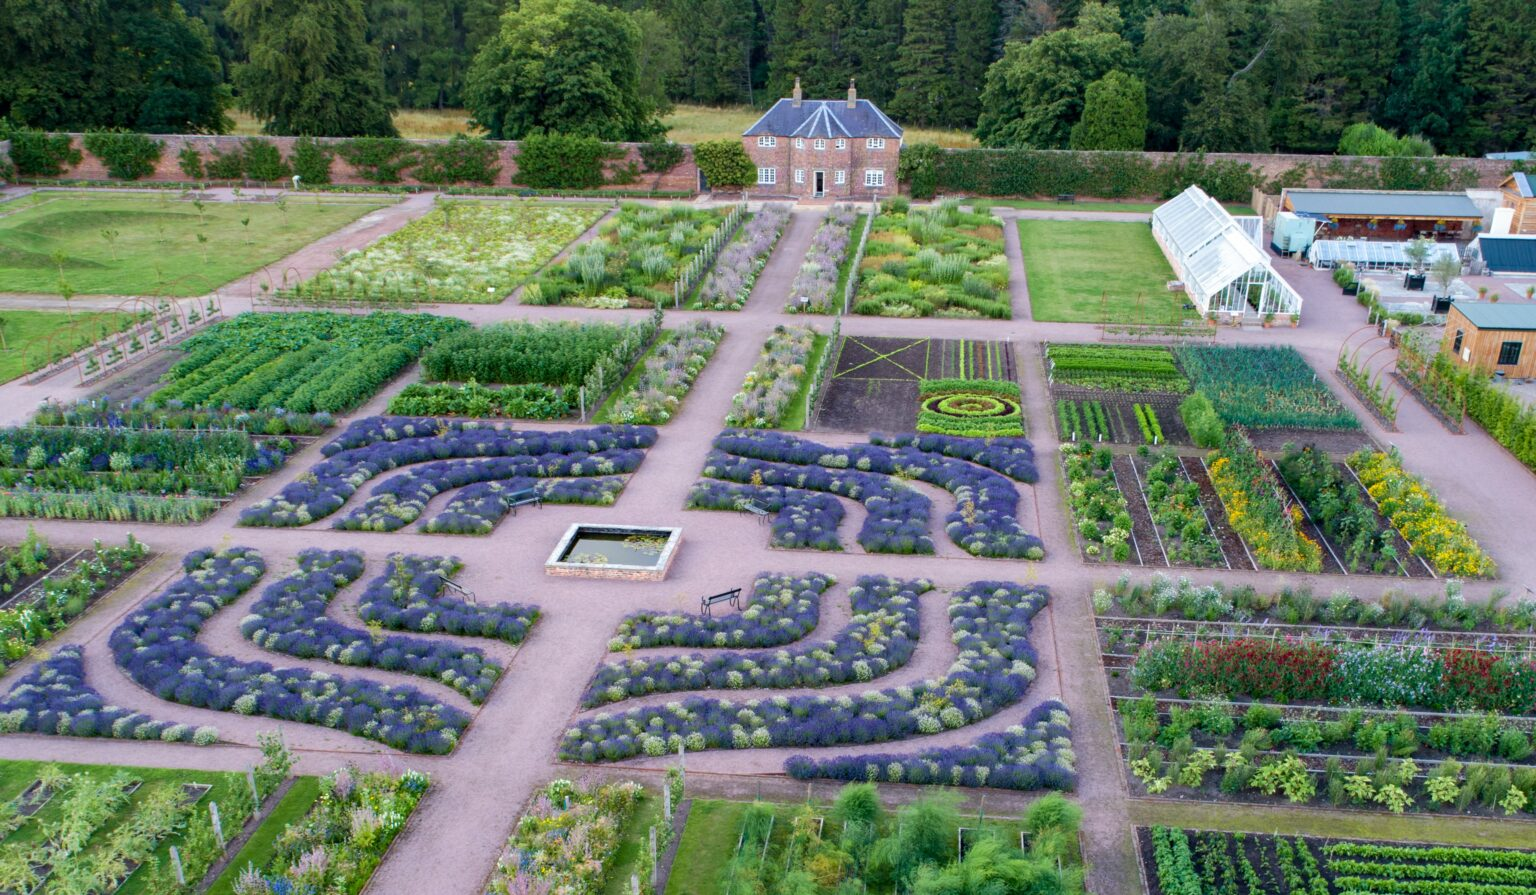 Aerial view of the elaborate cutting beds at Gordon Castle Walled Garden